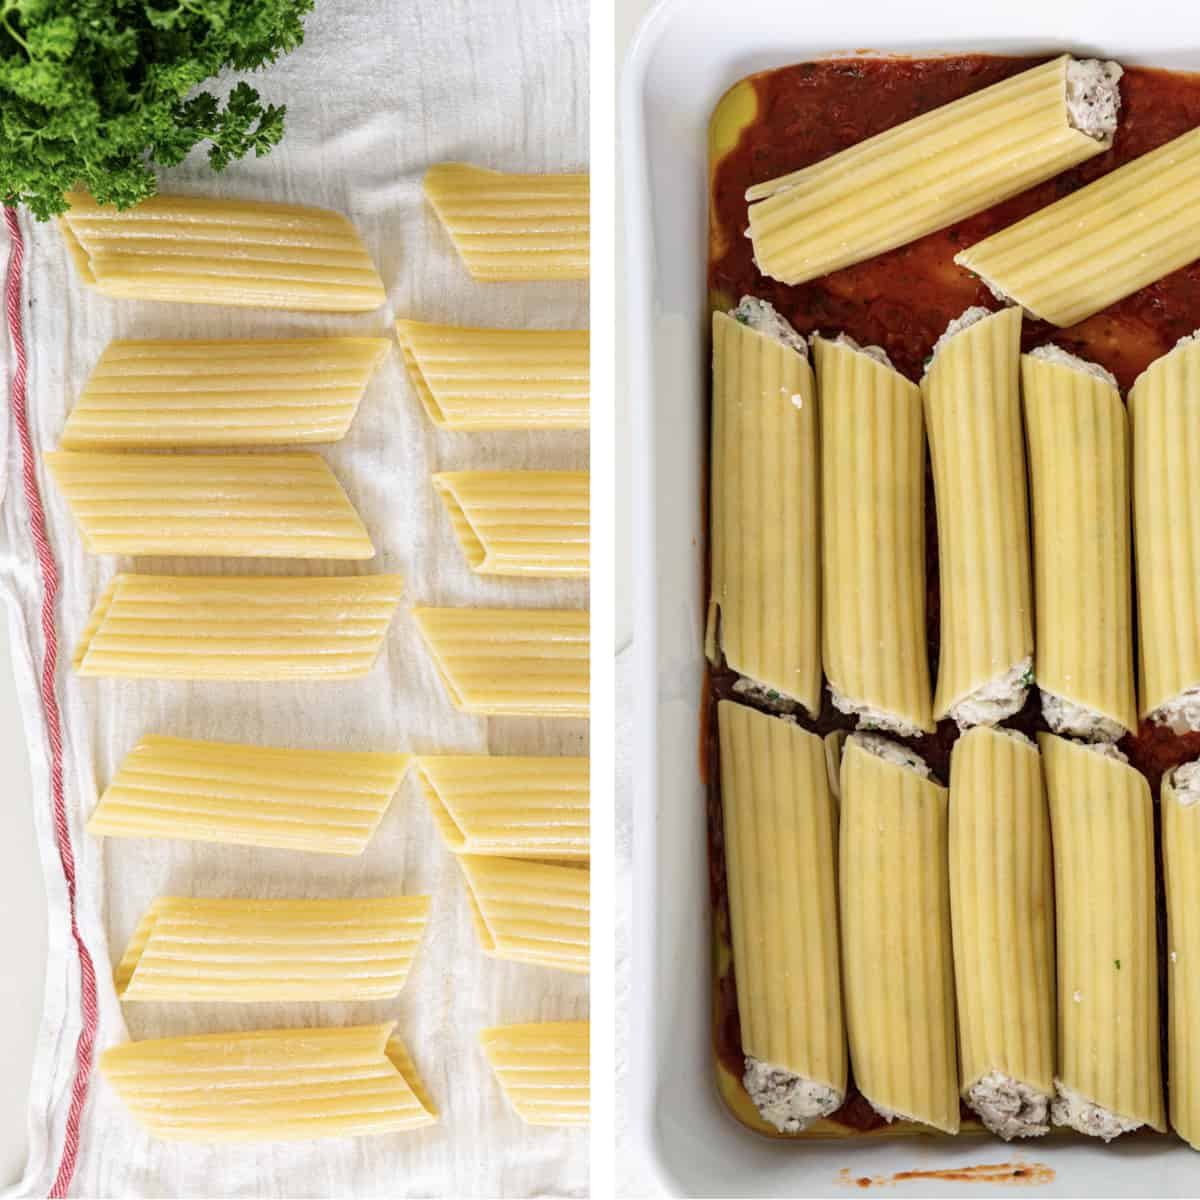 cooked manicotti shells on towel and others stuffed in pan with tomato sauce